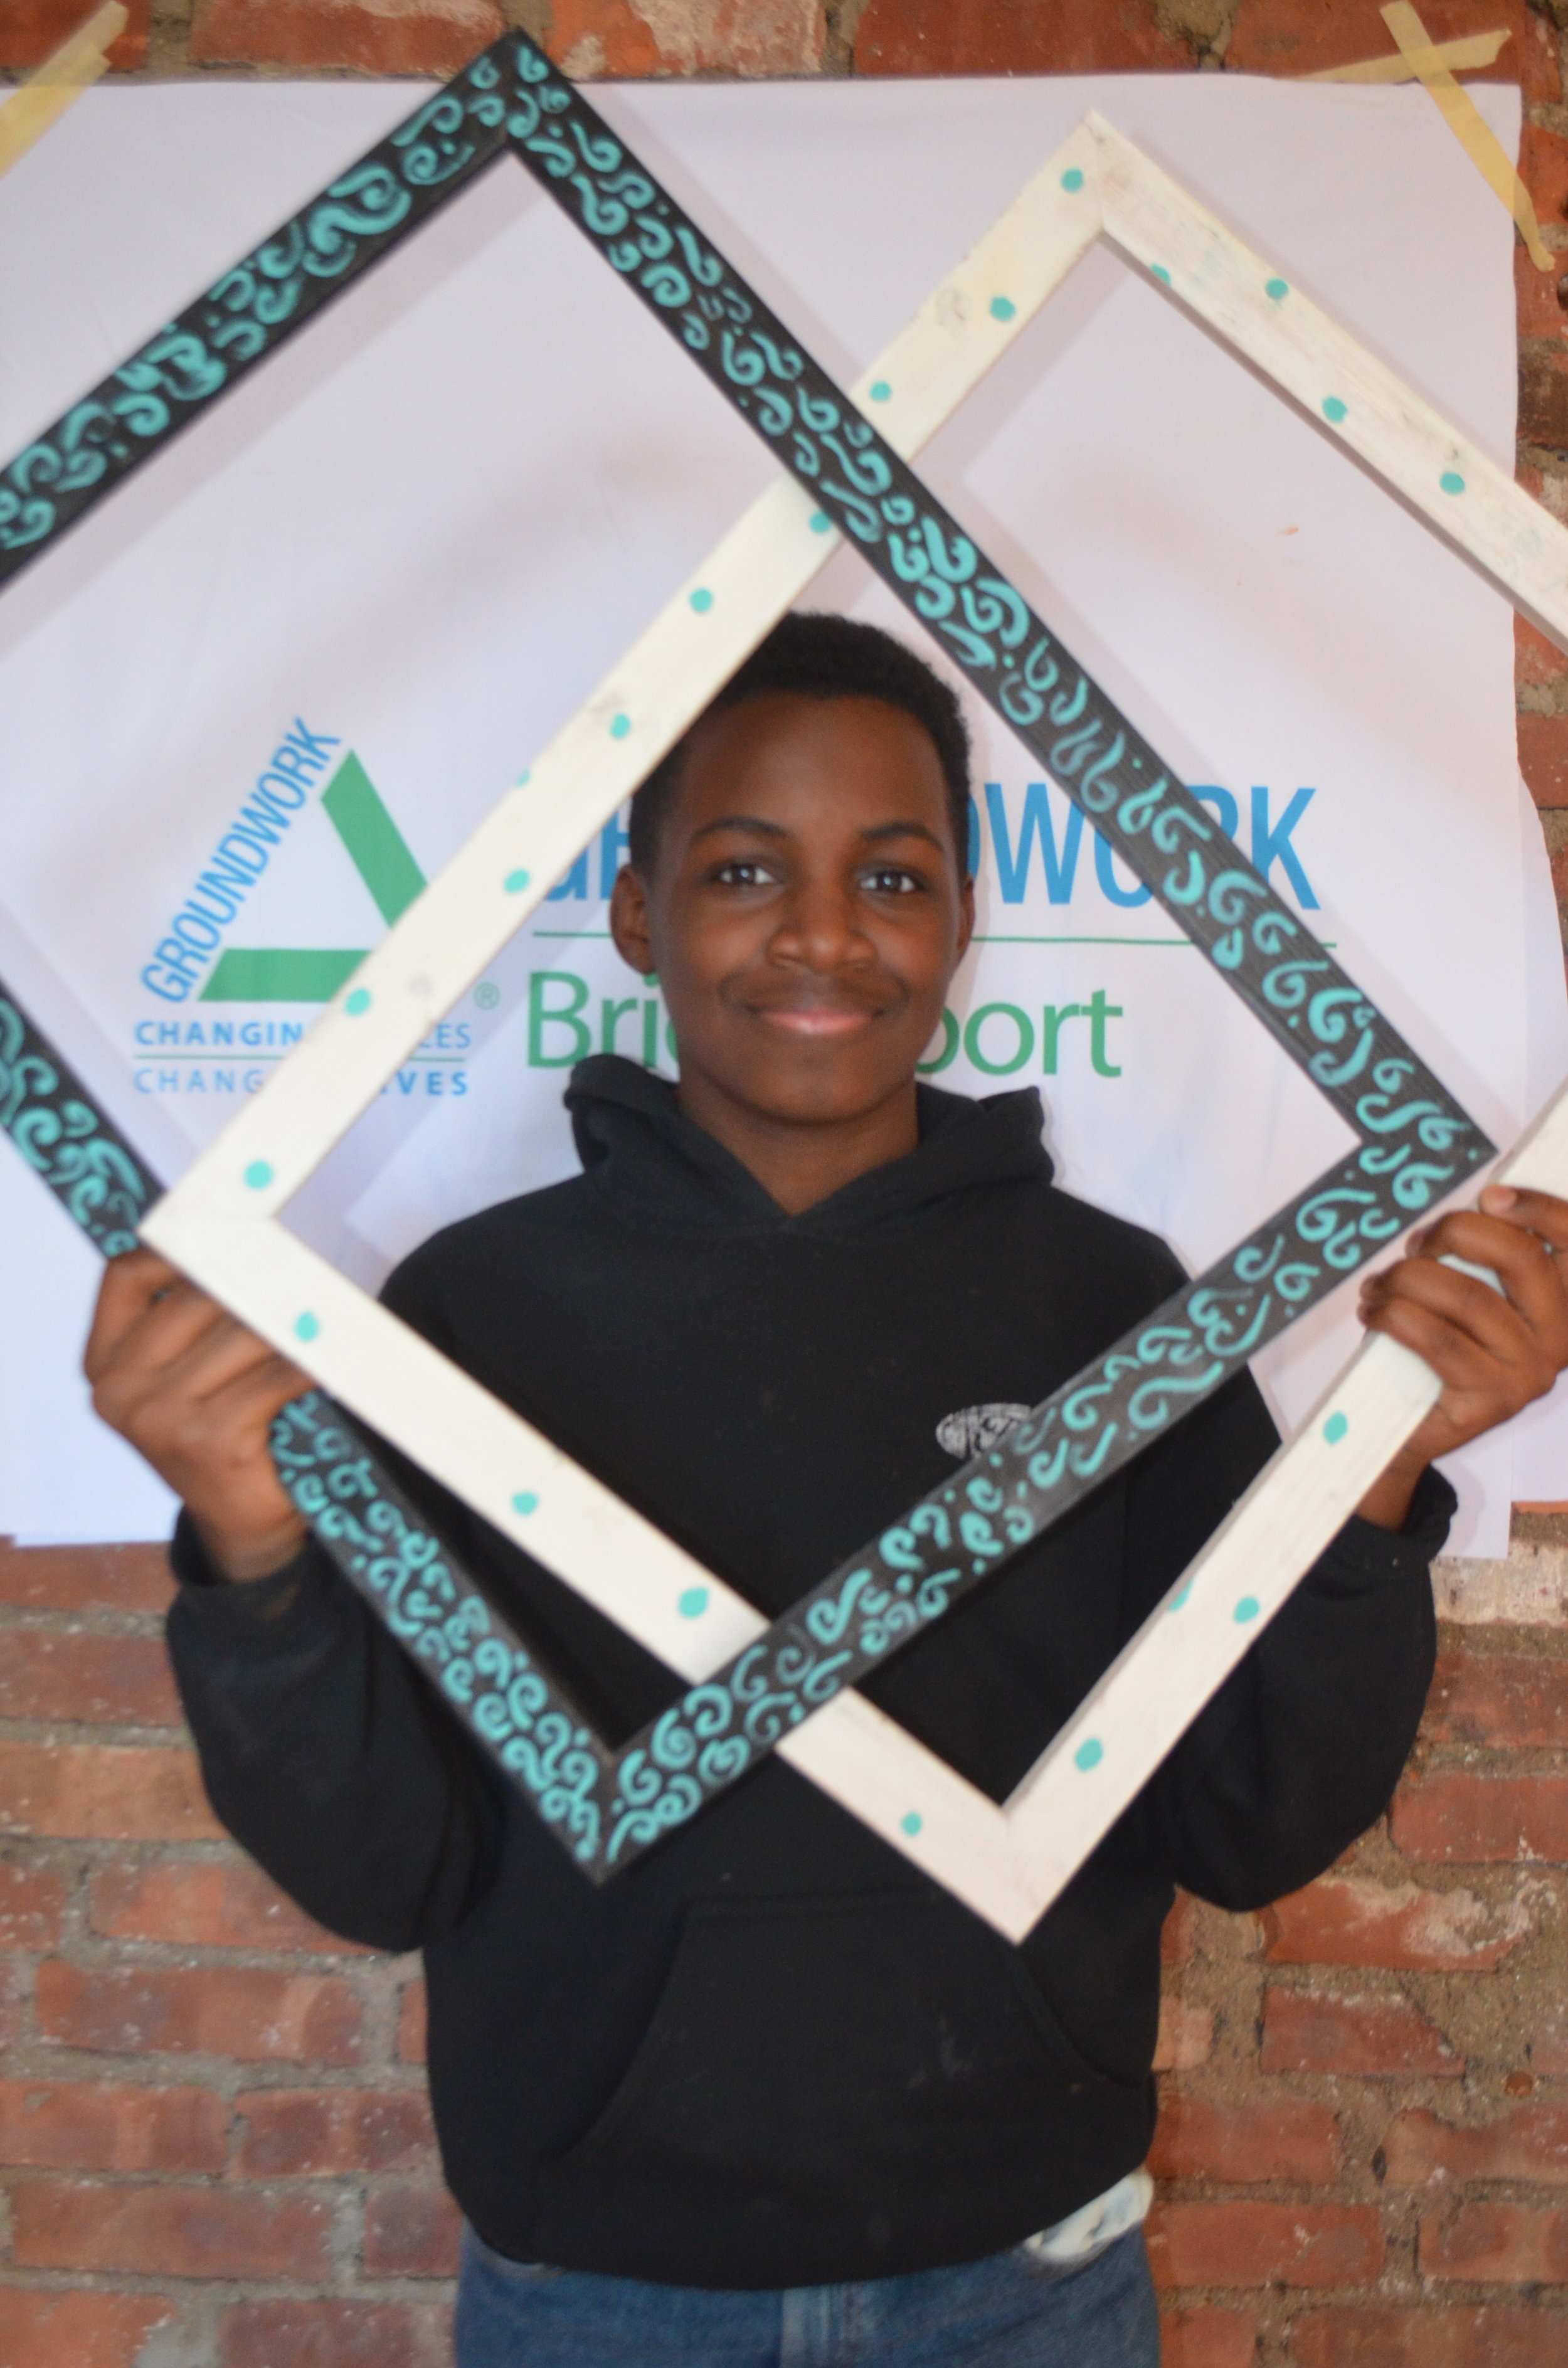 Robert Dawson  My name is Robert and I'm 14 years old. I am in the ninth grade and attend Fairchild Wheeler in Bridgeport, CT. I like anything that's fun!